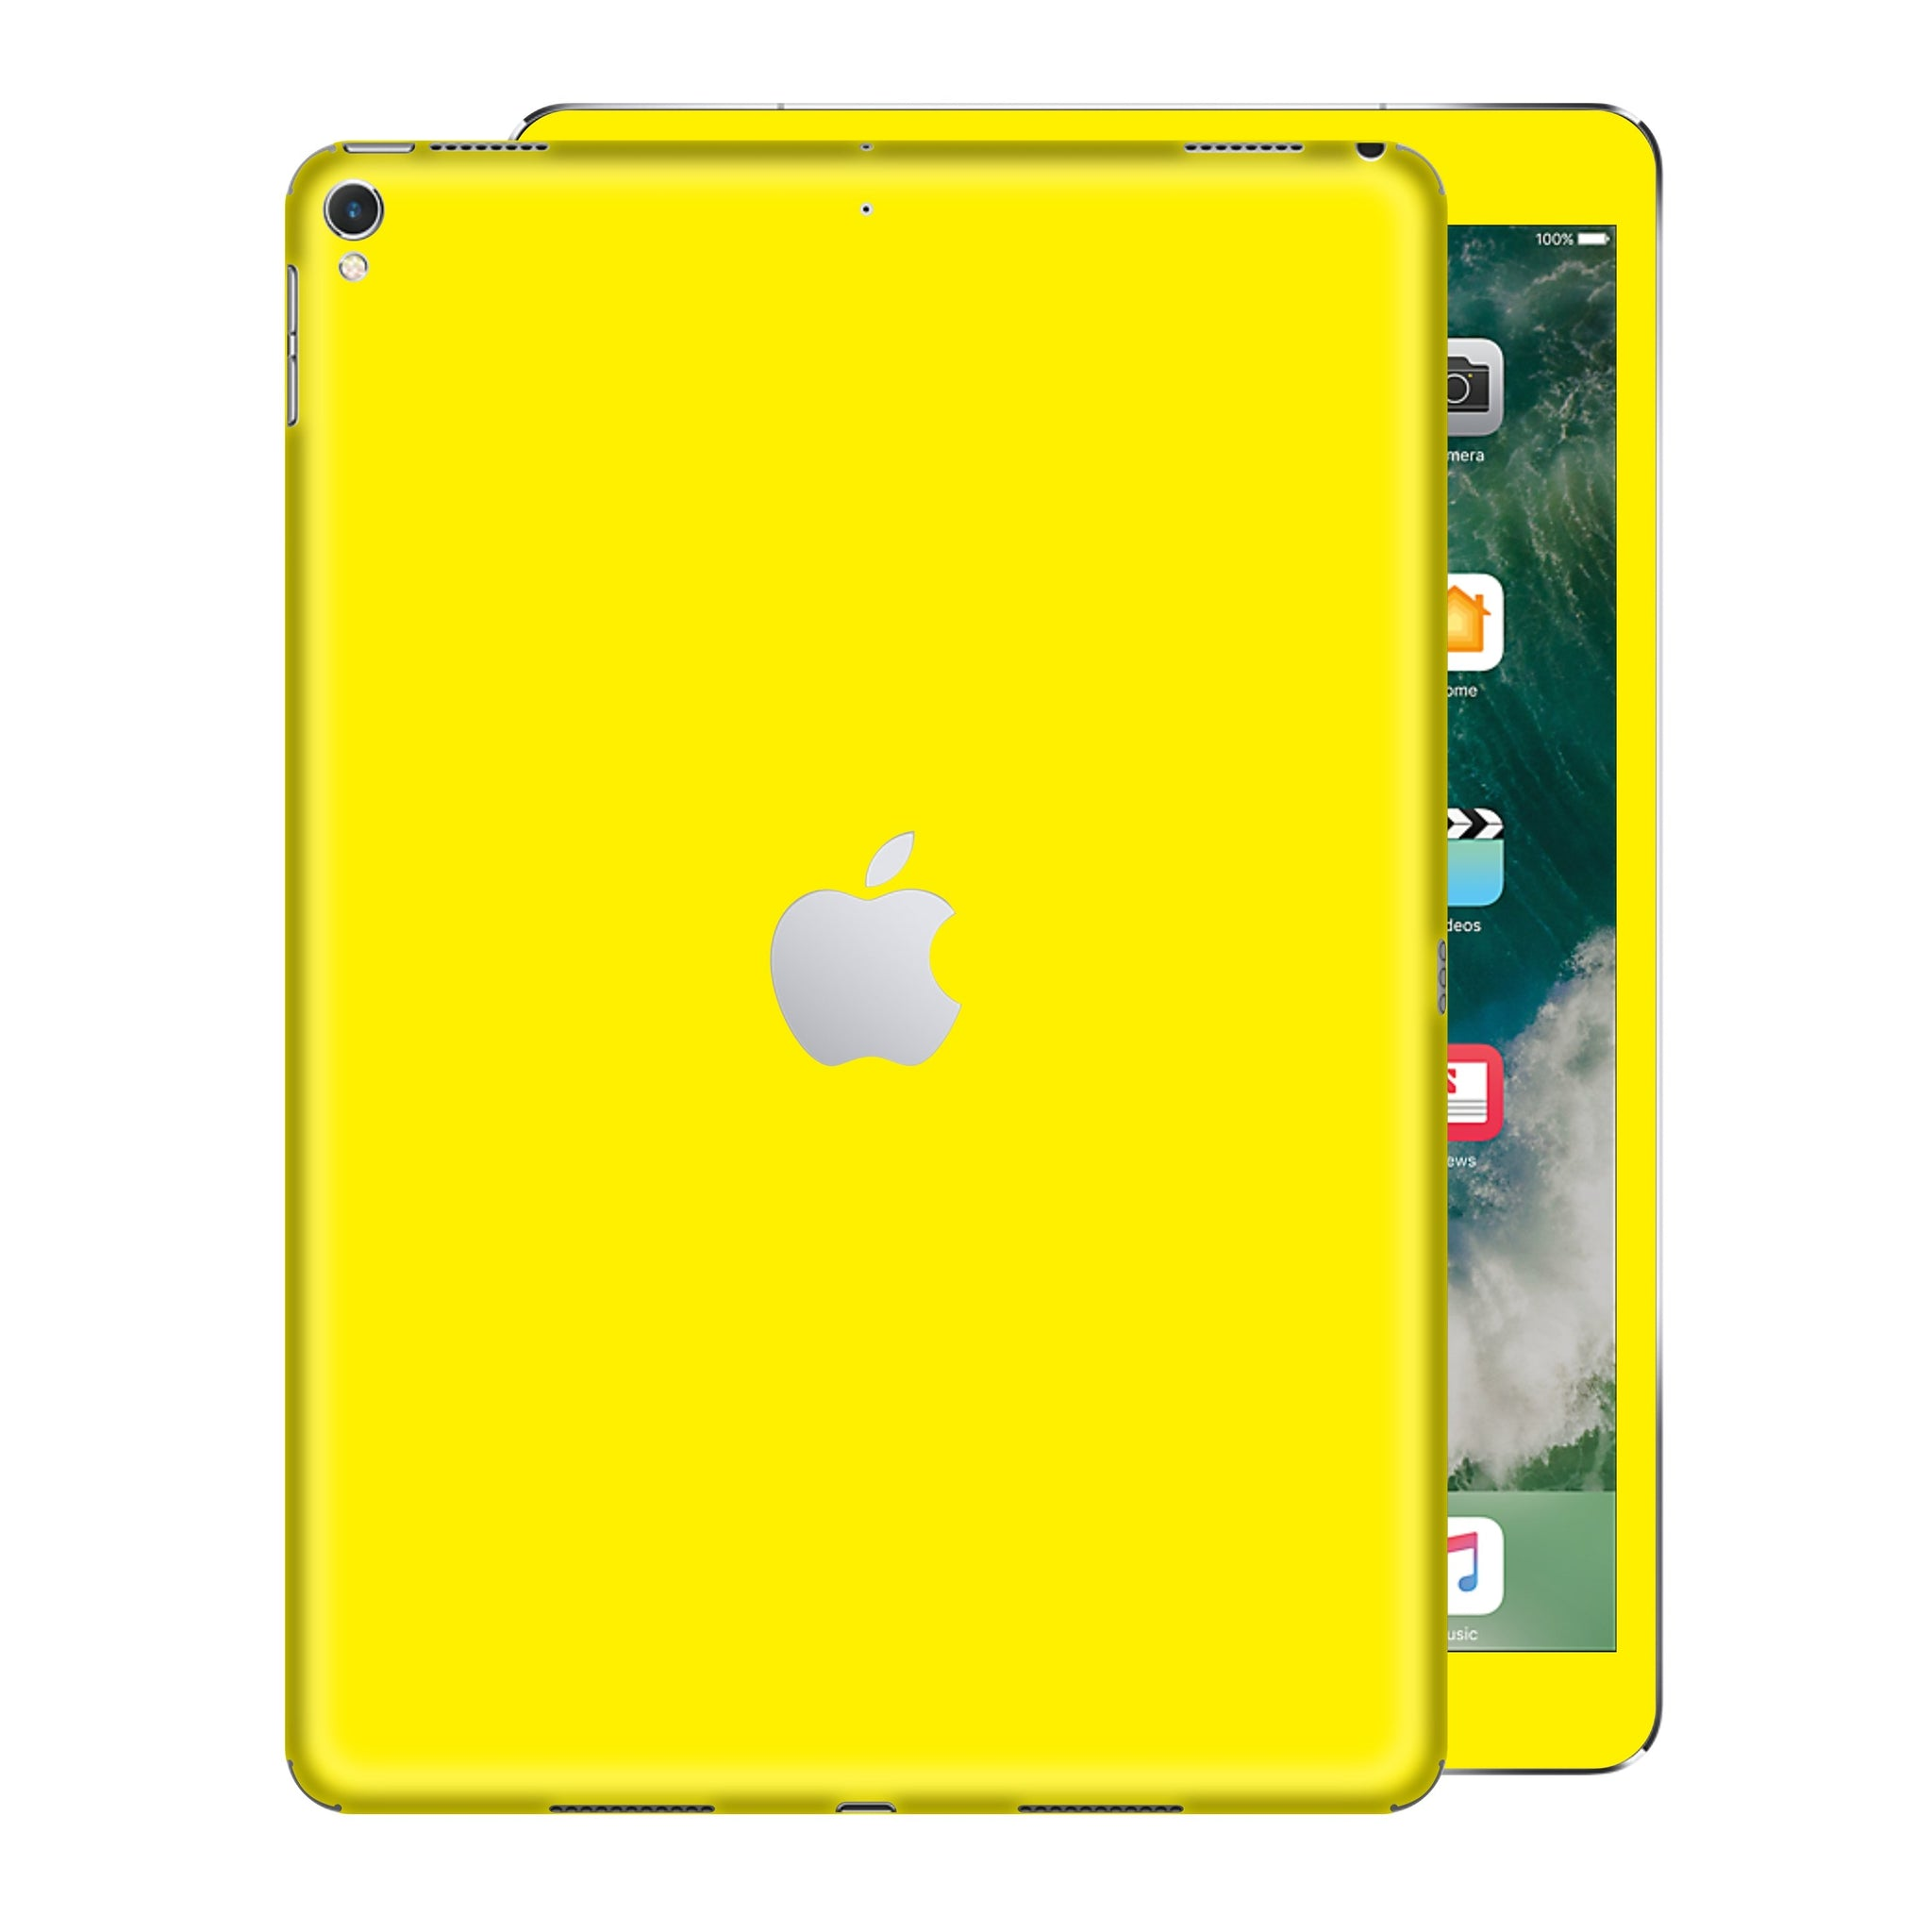 iPad PRO 12.9 inch 2017 Glossy Lemon Yellow Skin Wrap Sticker Decal Cover Protector by EasySkinz